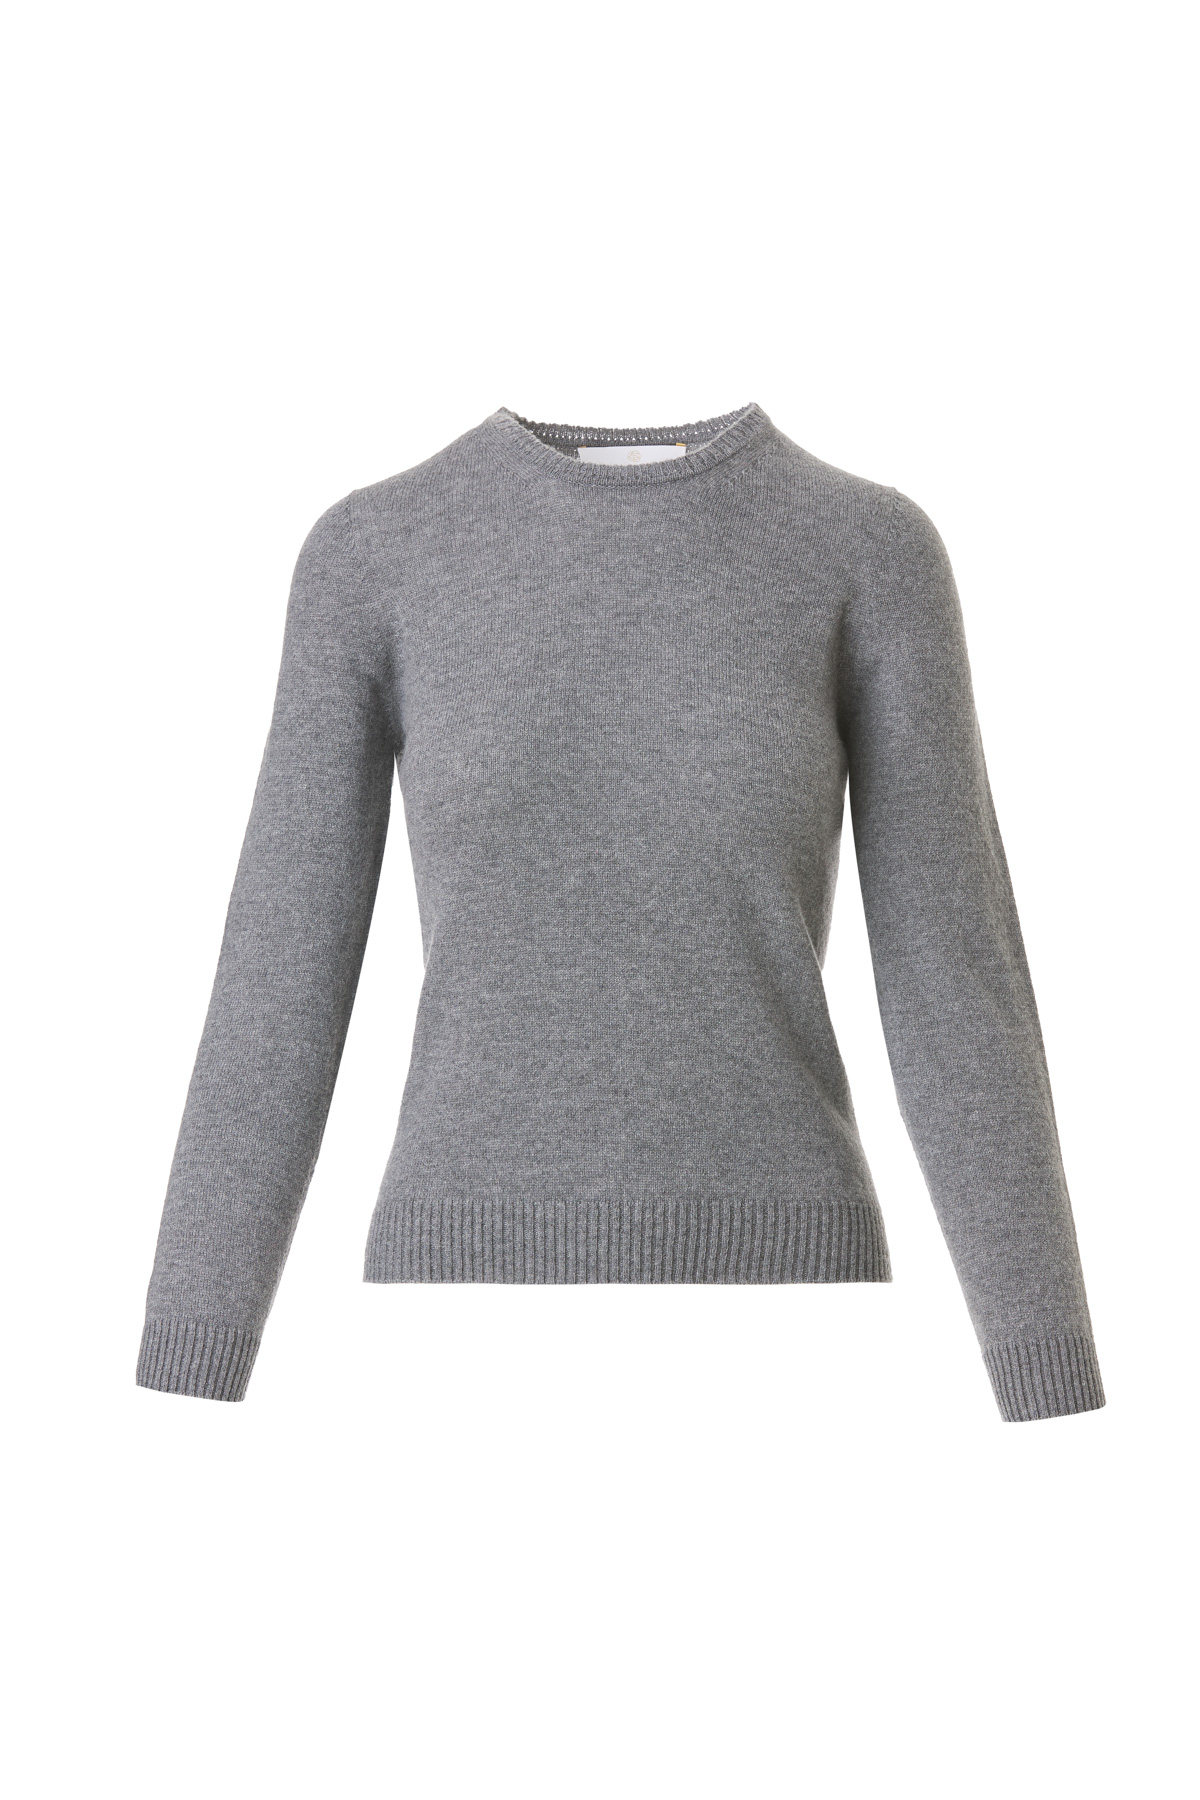 3D Cashmere Sweater - Grey by Ami Amalia on curated-crowd.com